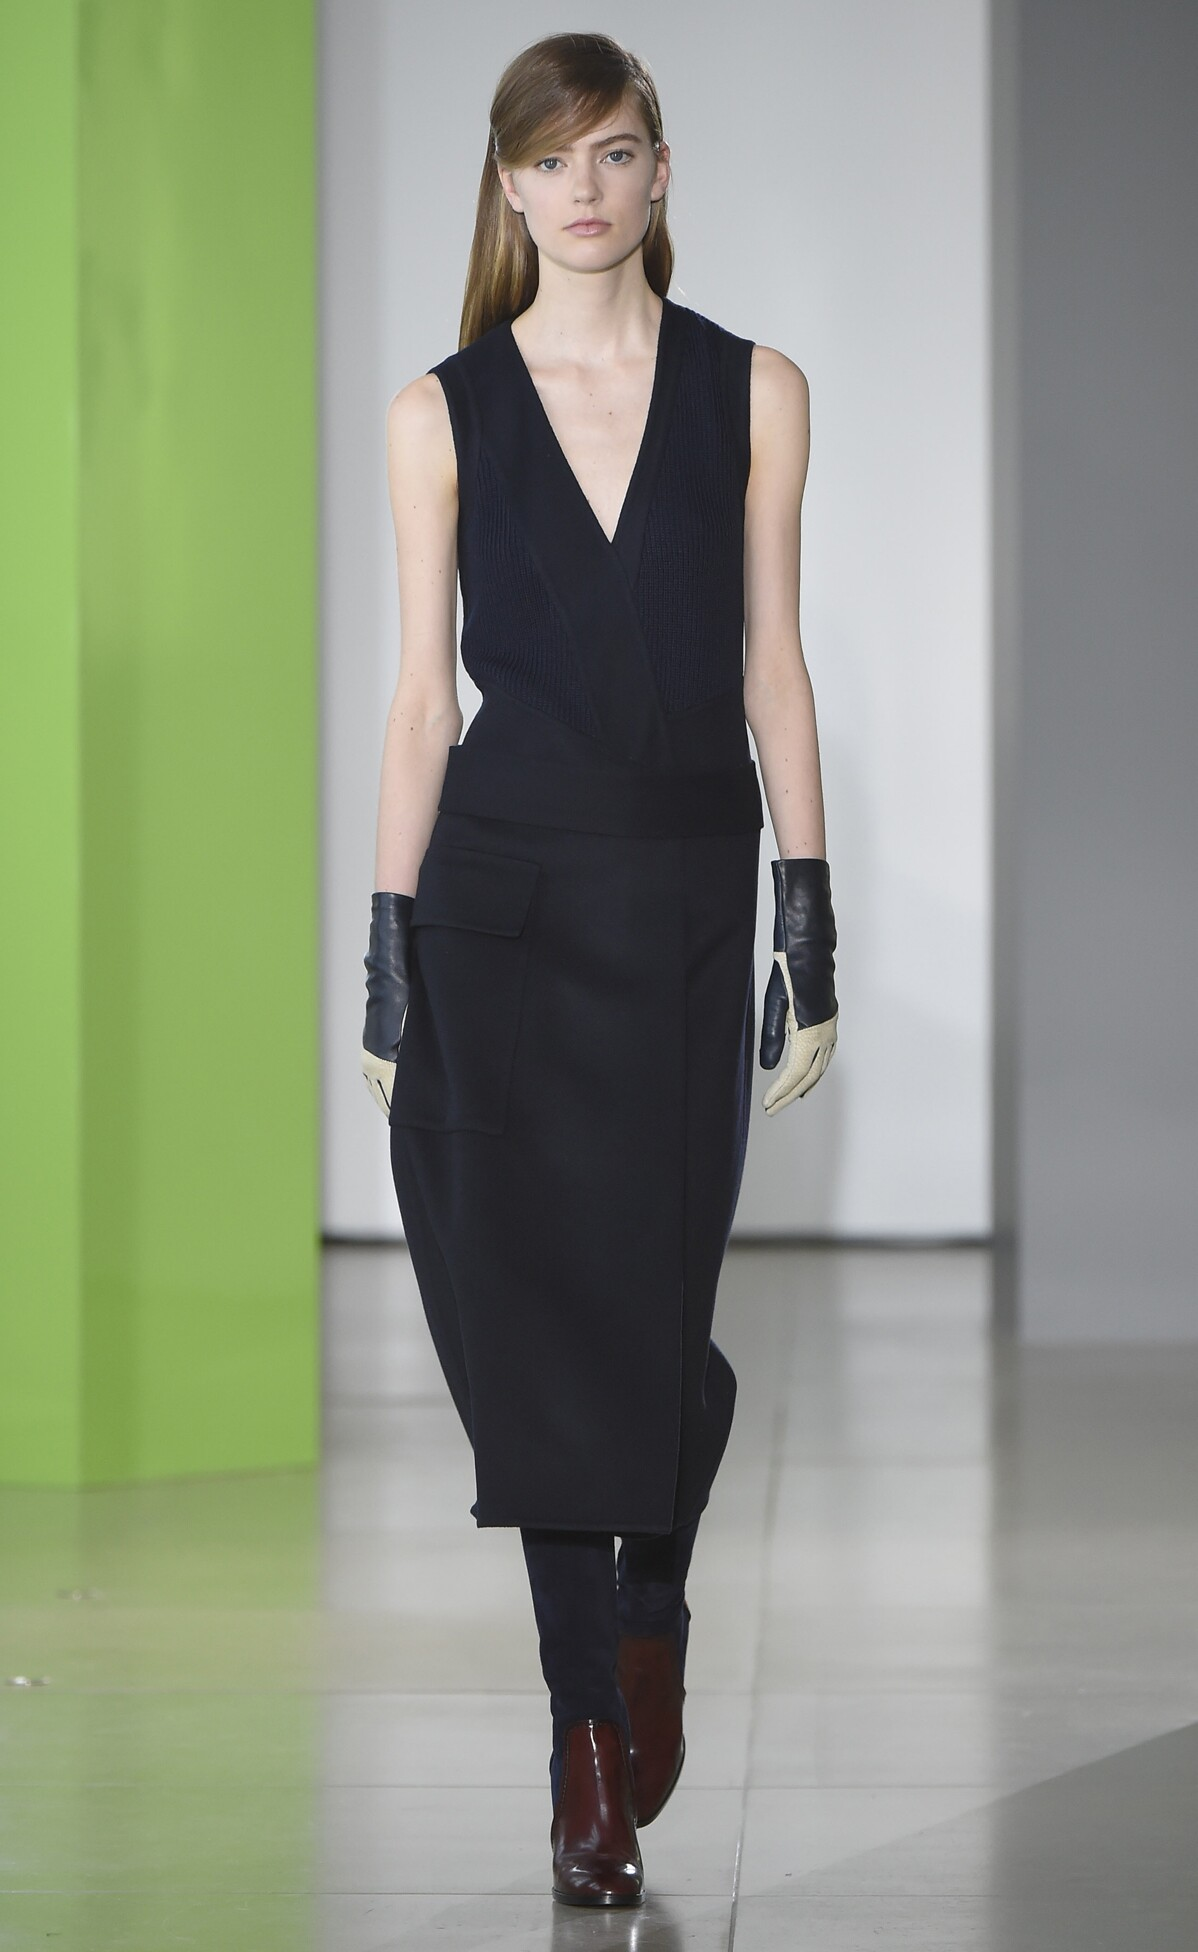 Jil Sander Women's Collection 2015 2016